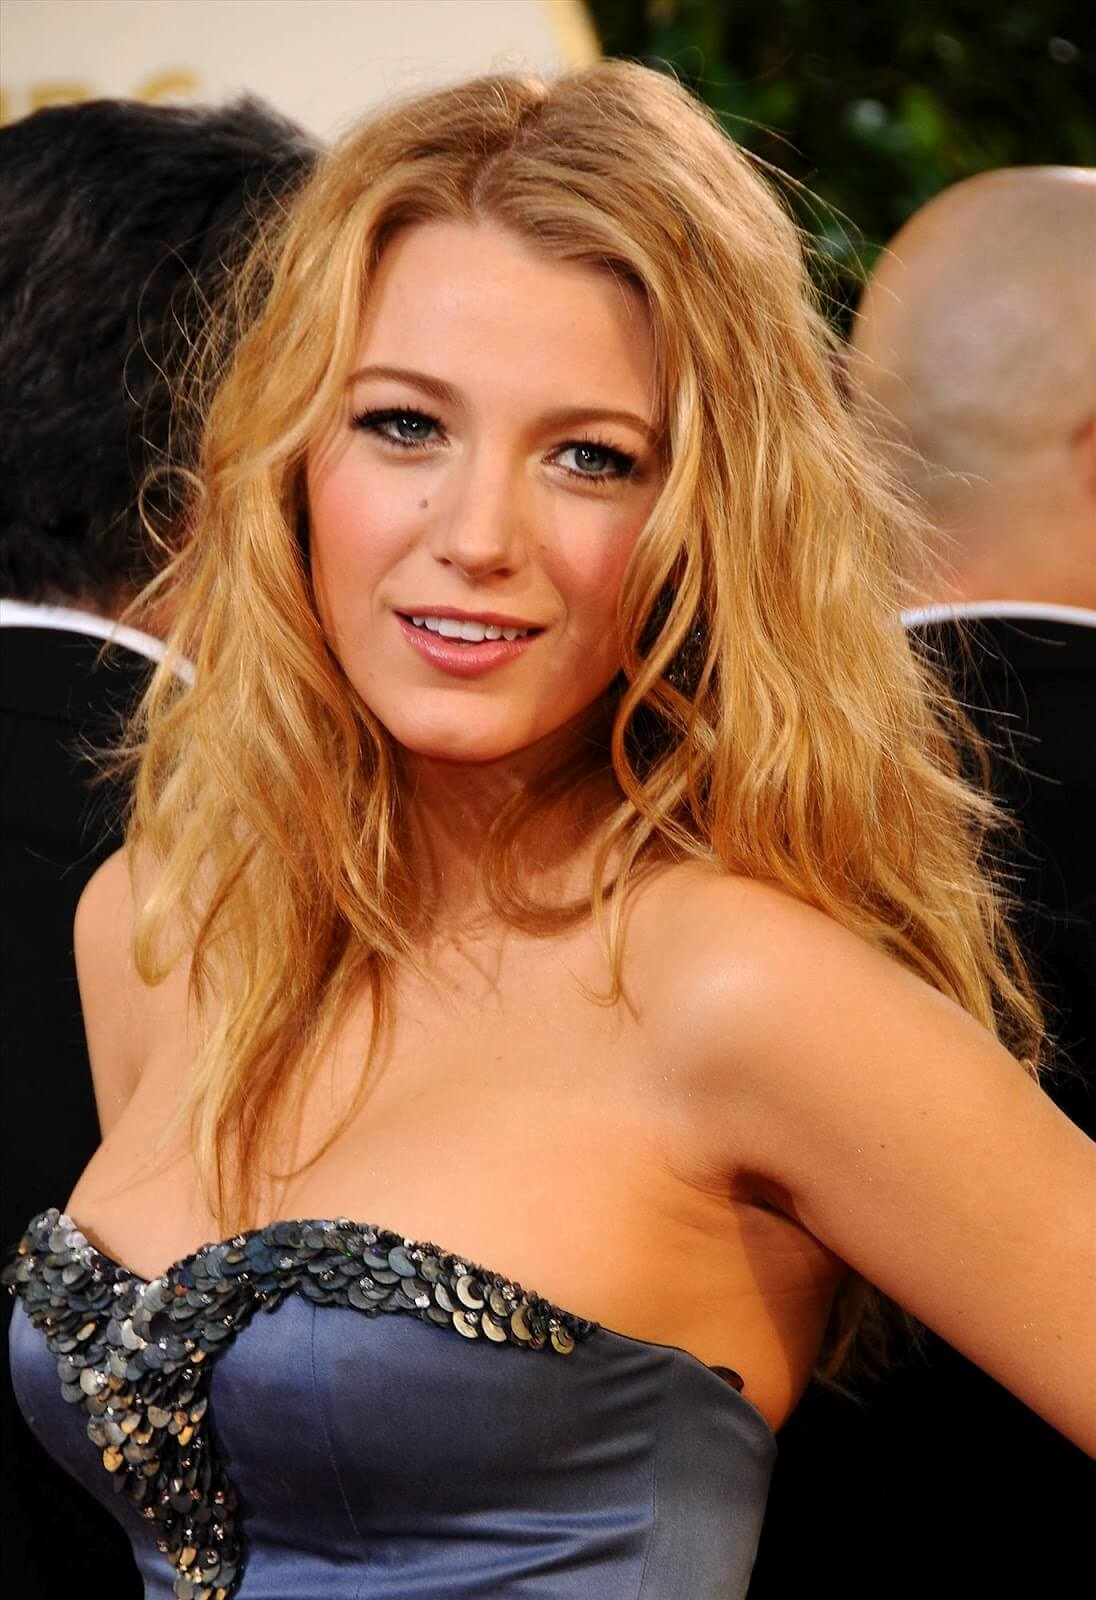 Blake Lively sexy boobs pictures